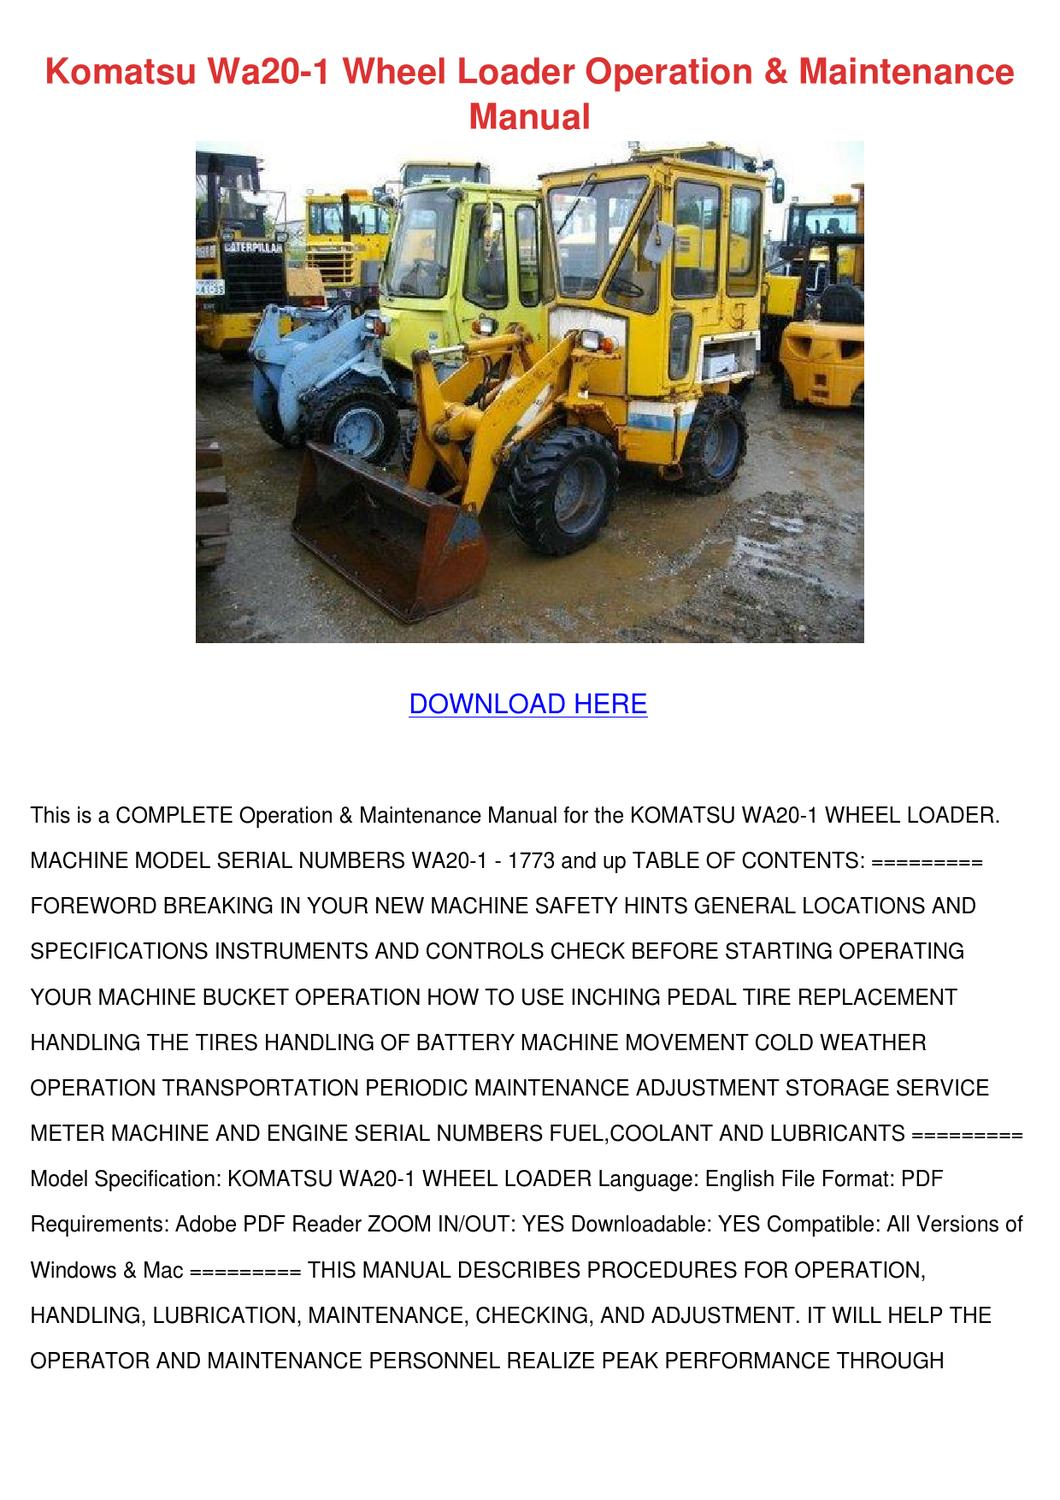 Komatsu Wa20 1 Wheel Loader Operation Mainten by HermelindaFishman - issuu